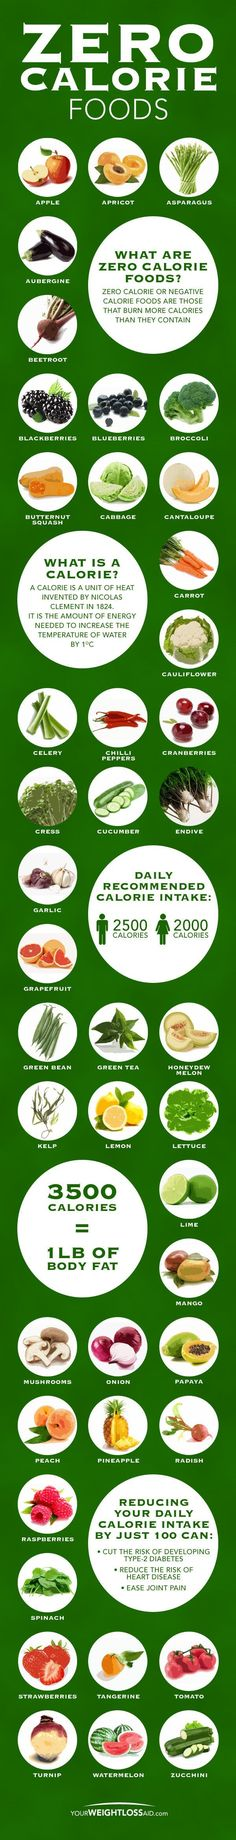 HEALTHY FOOD - Zero Calorie Foods.